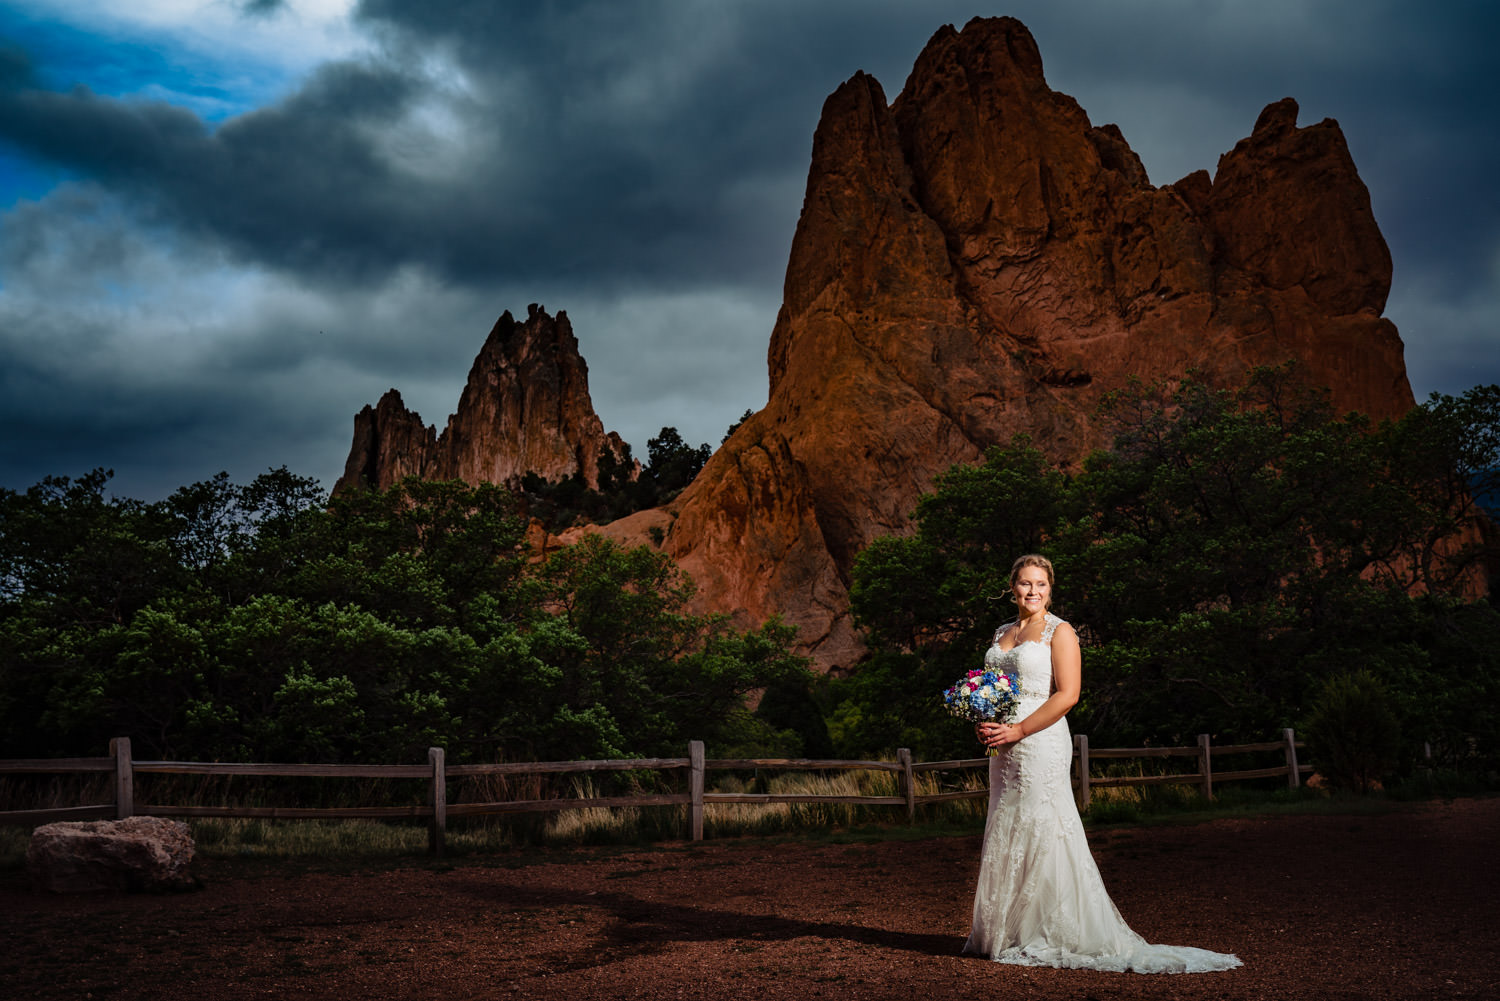 Cheyenne Mountain Resort Wedding by Colorado Spring Wedding Photographer JMGant Photography.